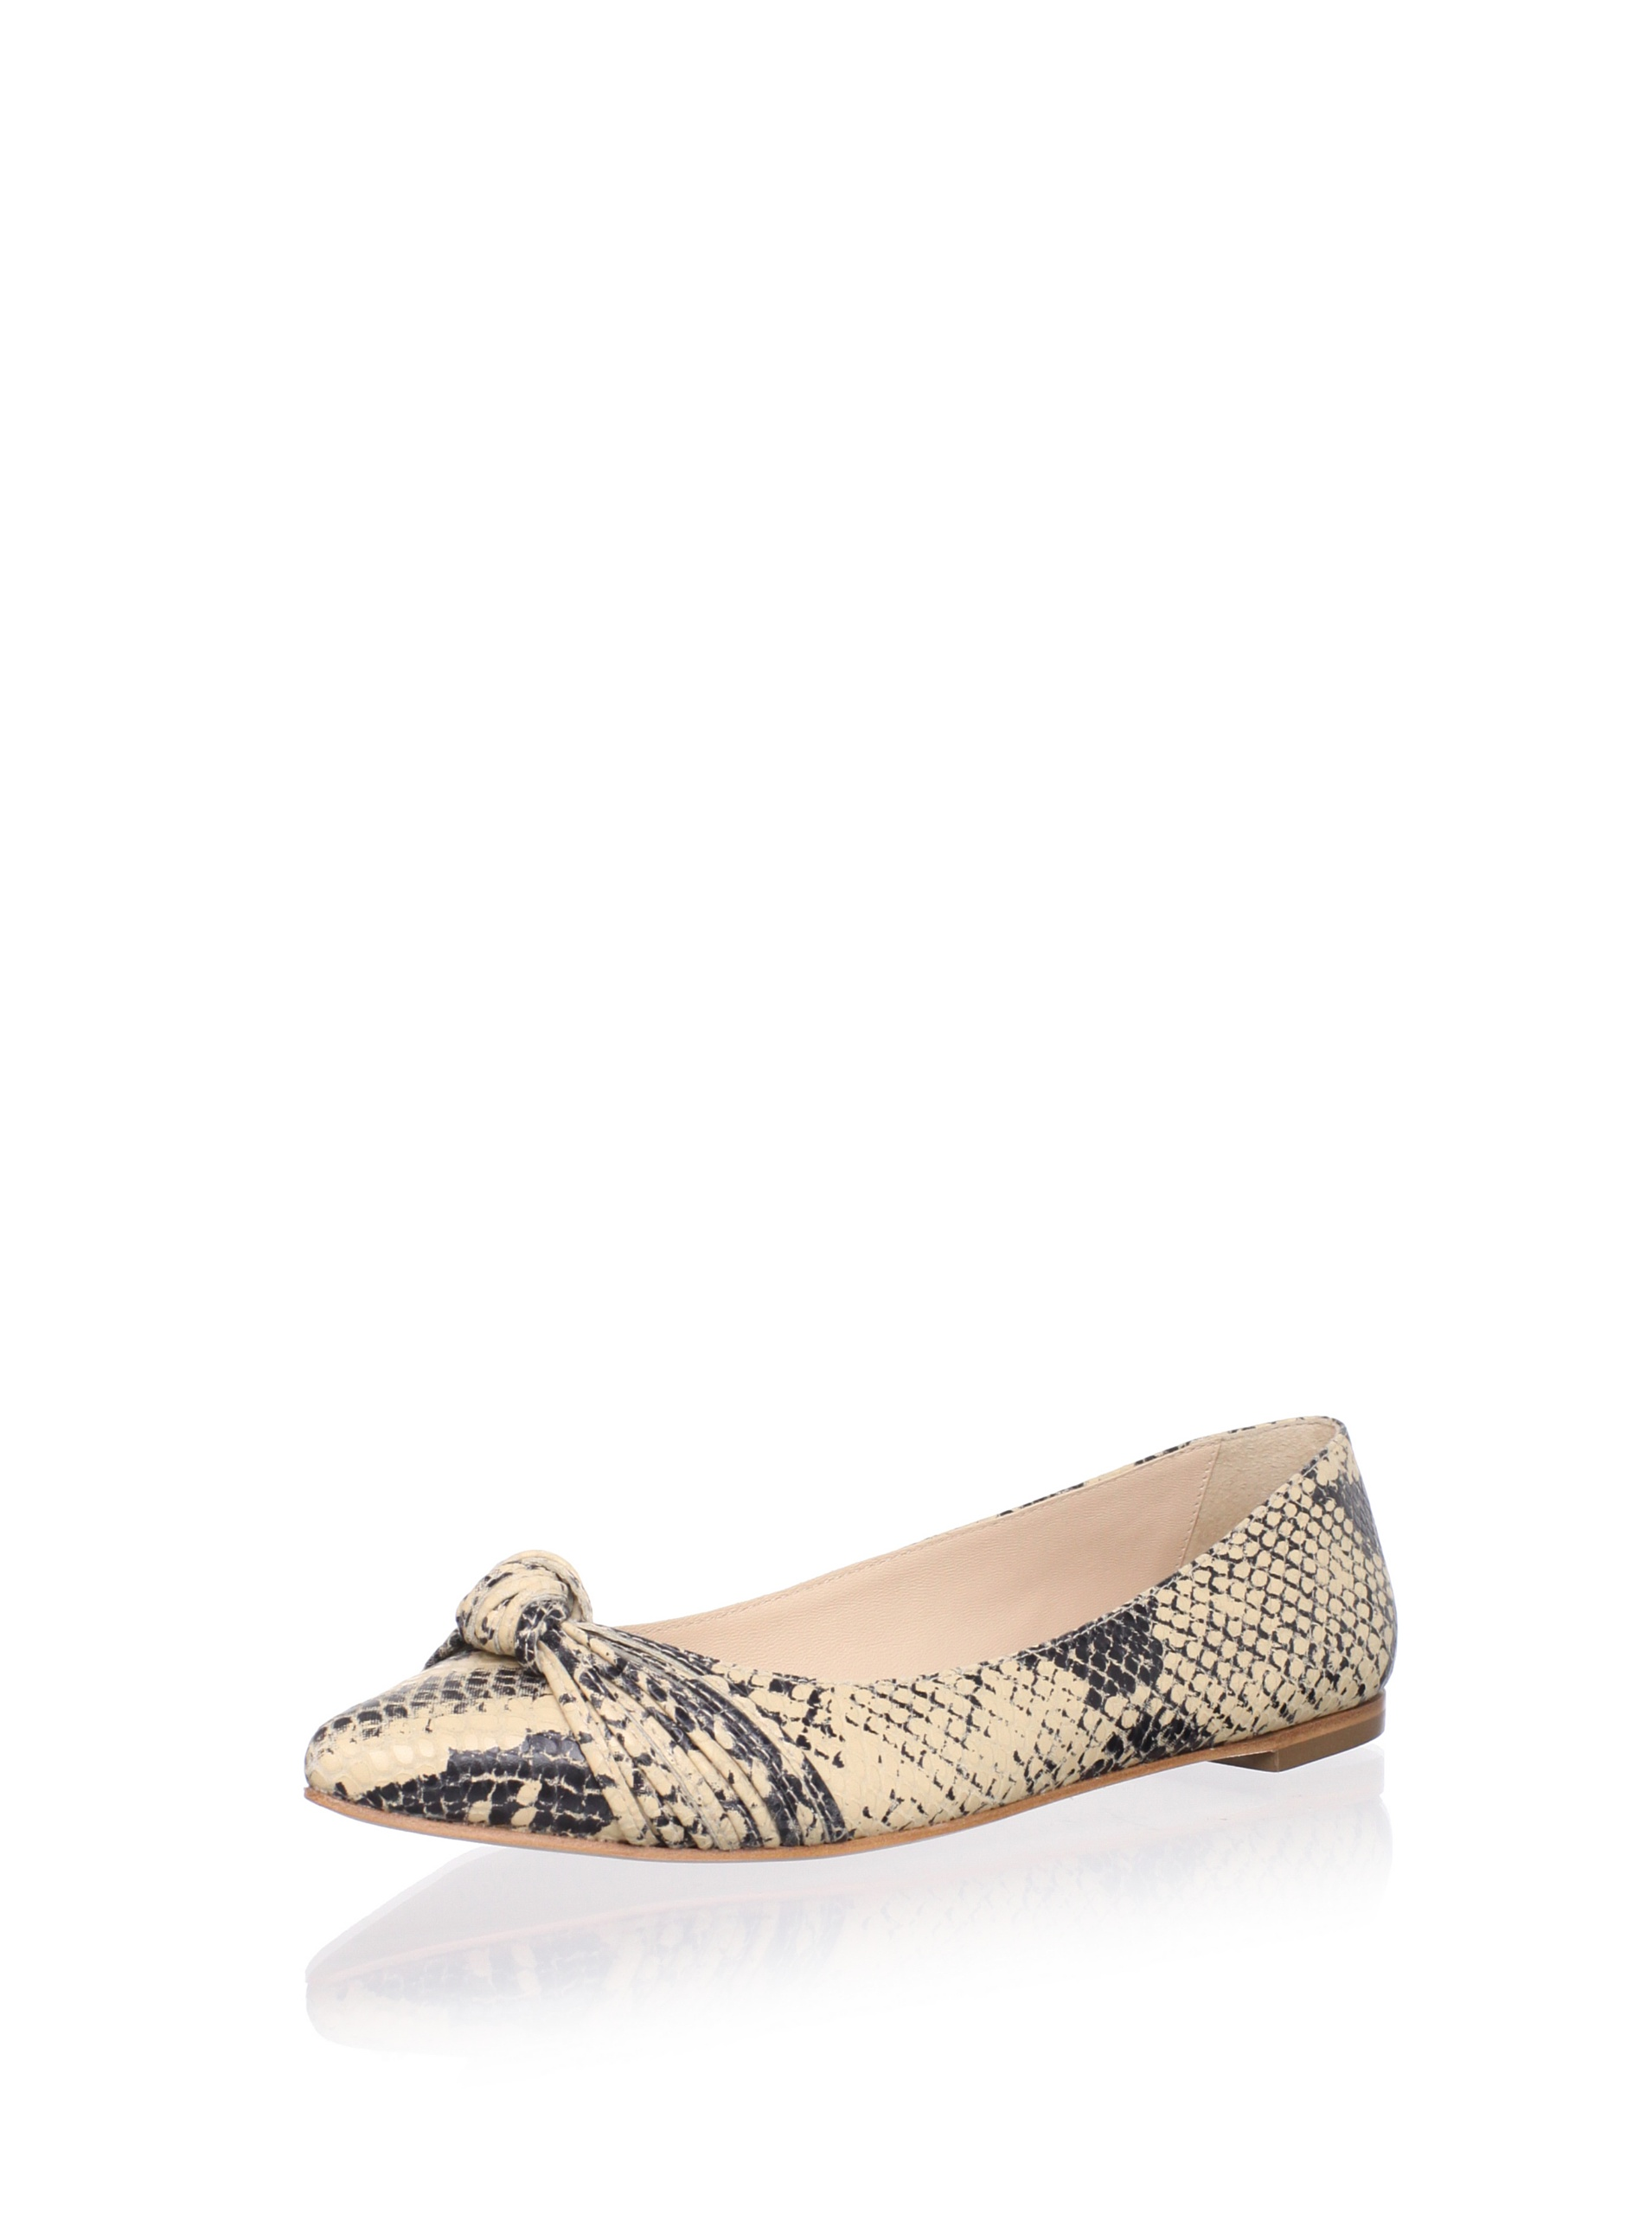 Loeffler Randall Women's Willow Flat (Natural/Snake)